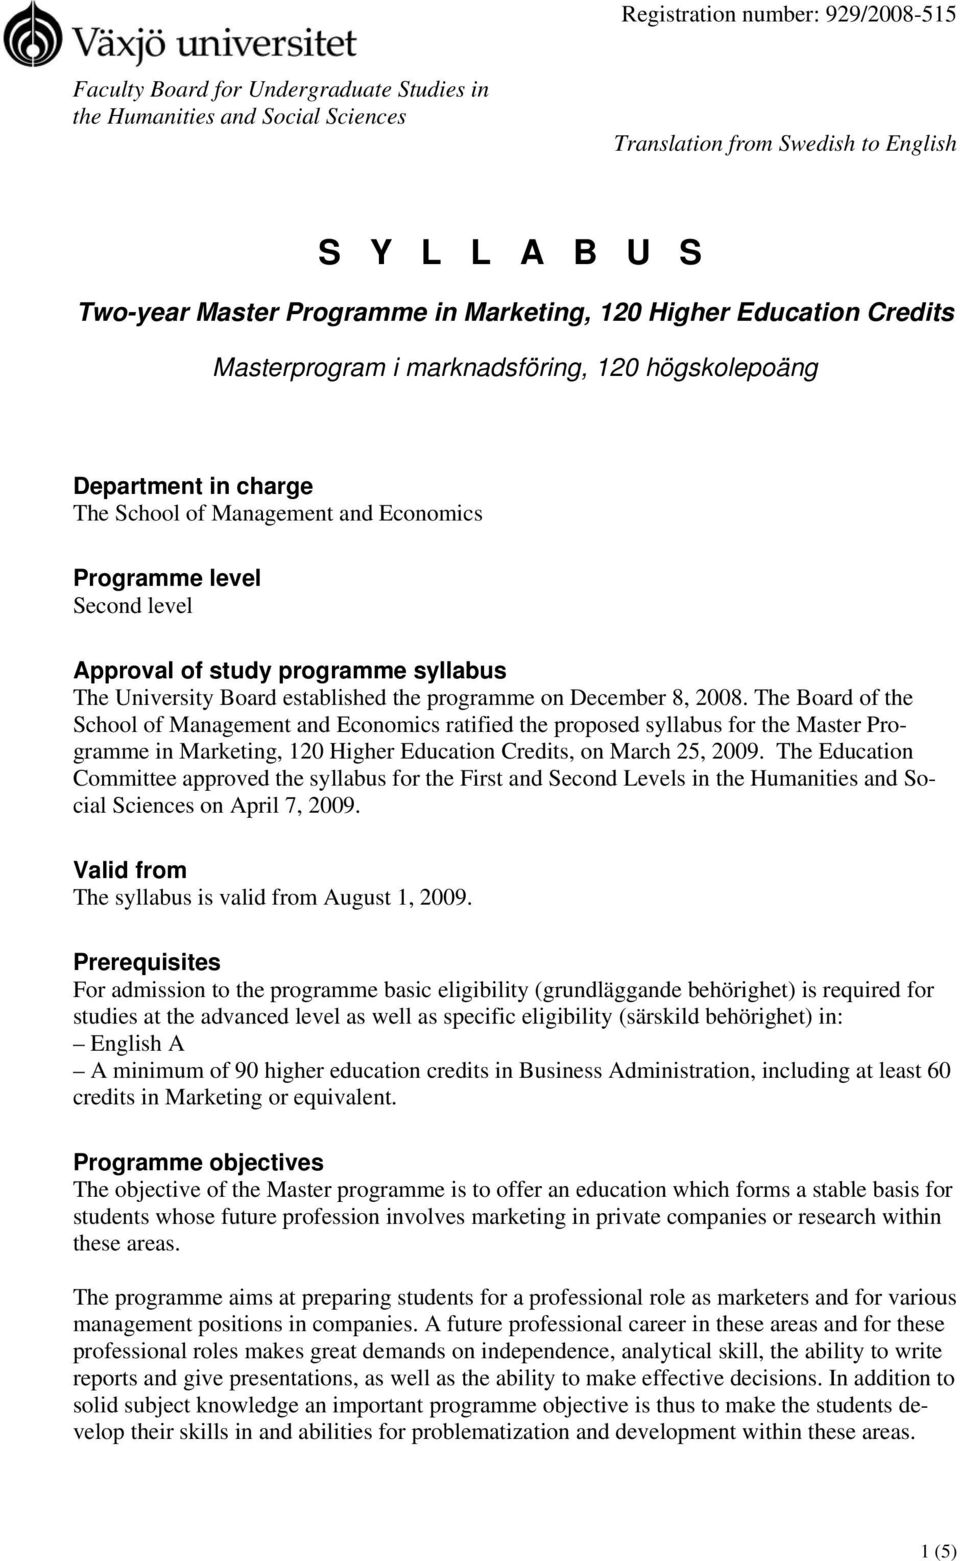 programme syllabus The University Board established the programme on December 8, 2008.